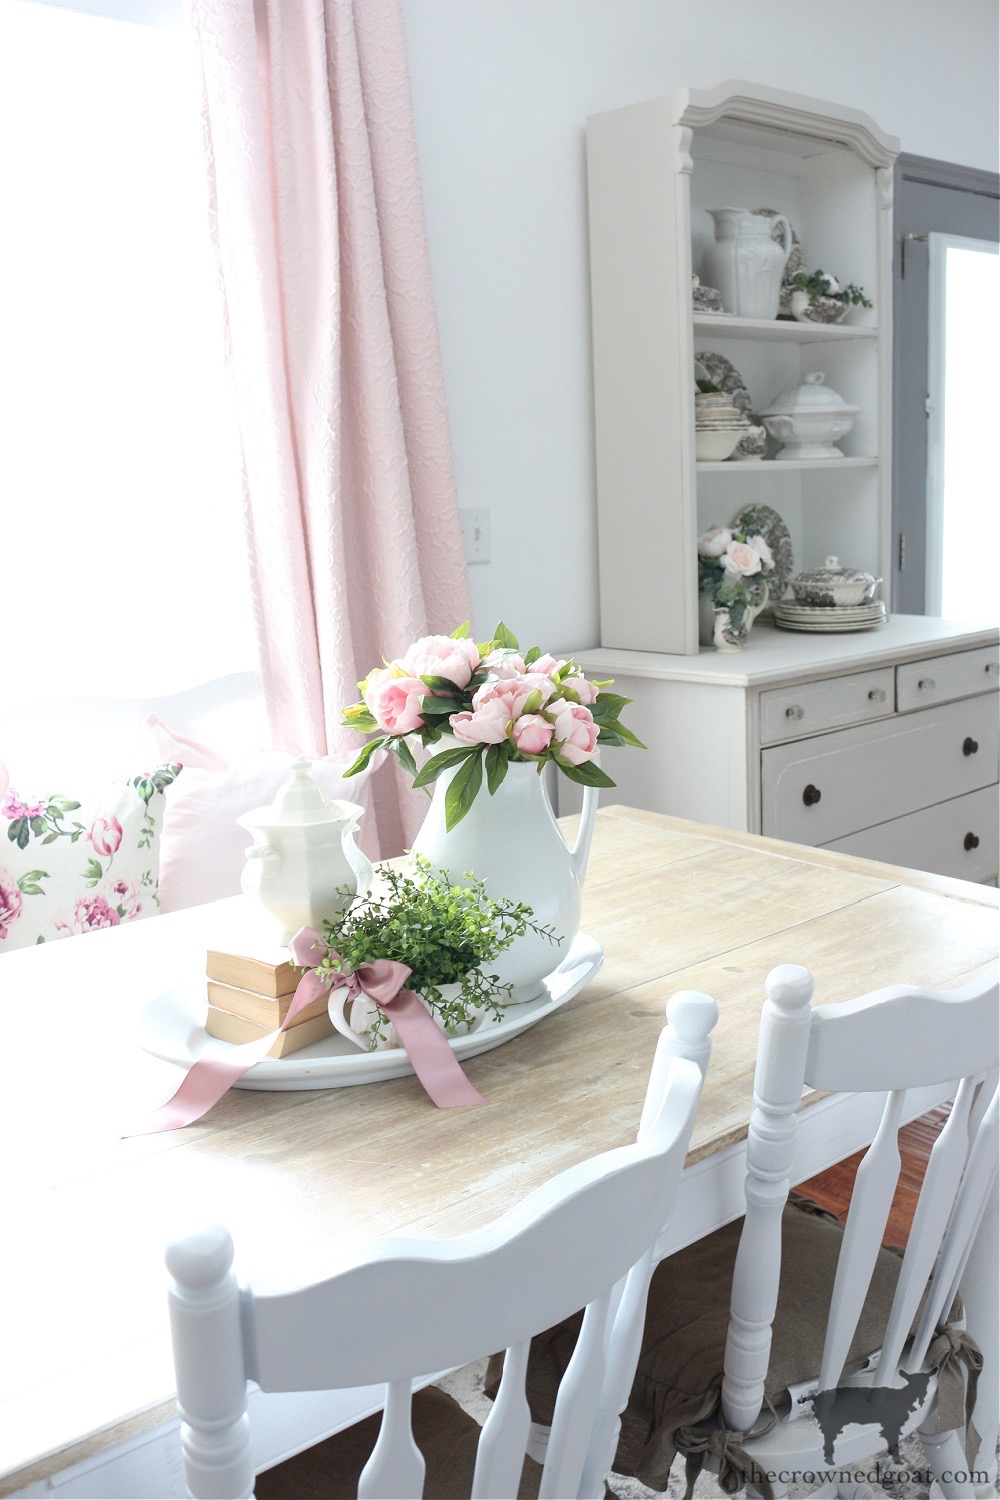 French Country Inspired Breakfast Nook with Peonies and Pops of Pink-The Crowned Goat